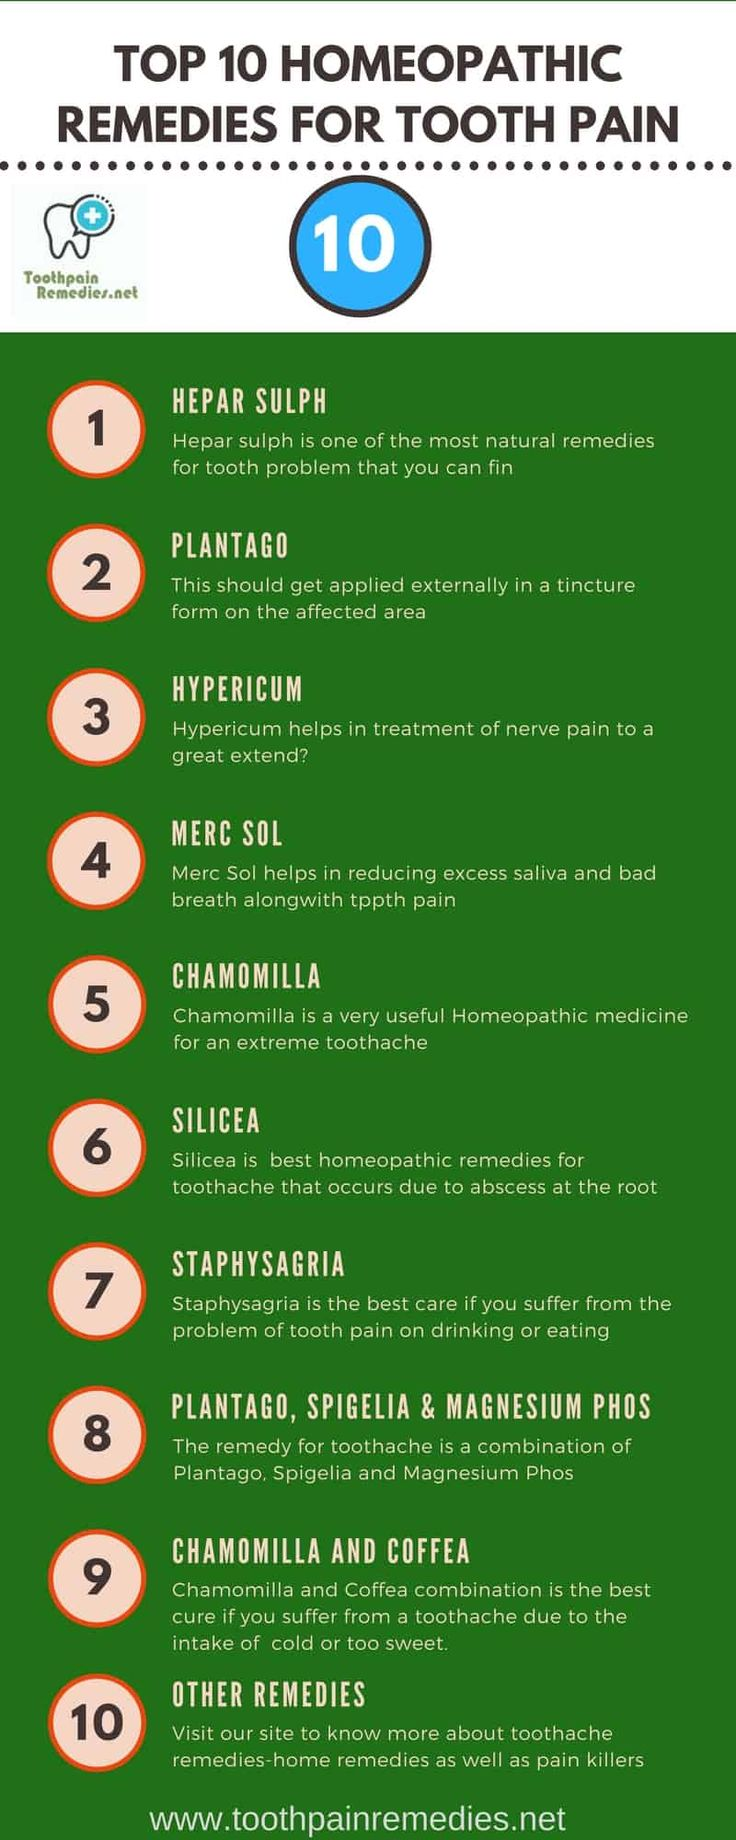 Best Homeopathic remedies for toothache A toothache is one the most nerve-wracking pain that a person has to experience,here in this article mentions about homeopathic remedies for a toothache. It just cannot stay ignored for the throbbing sensation that keeps on persisting till you do something about it. Many causes of a toothache exist.